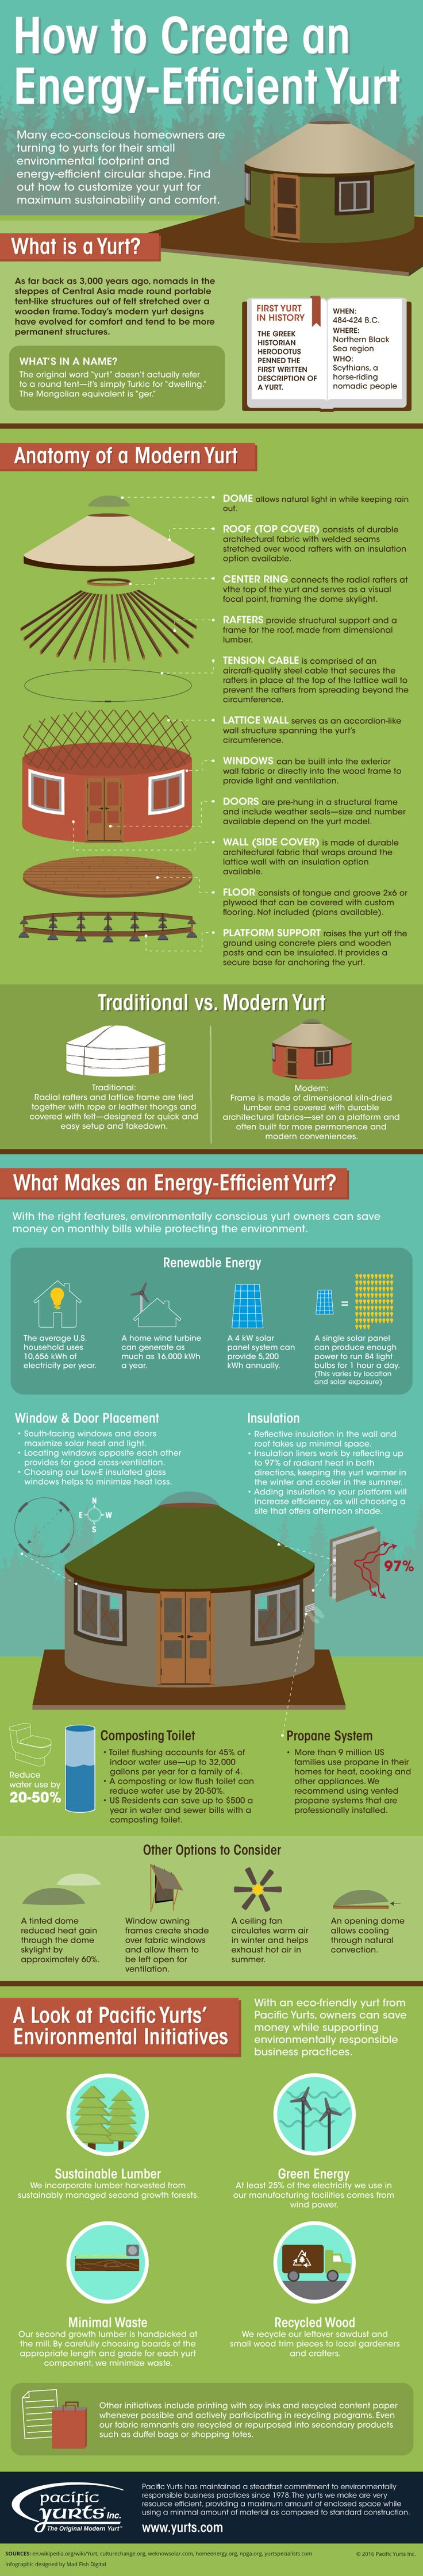 Energy-Efficient Yurt Infographic - Pacific Yurts